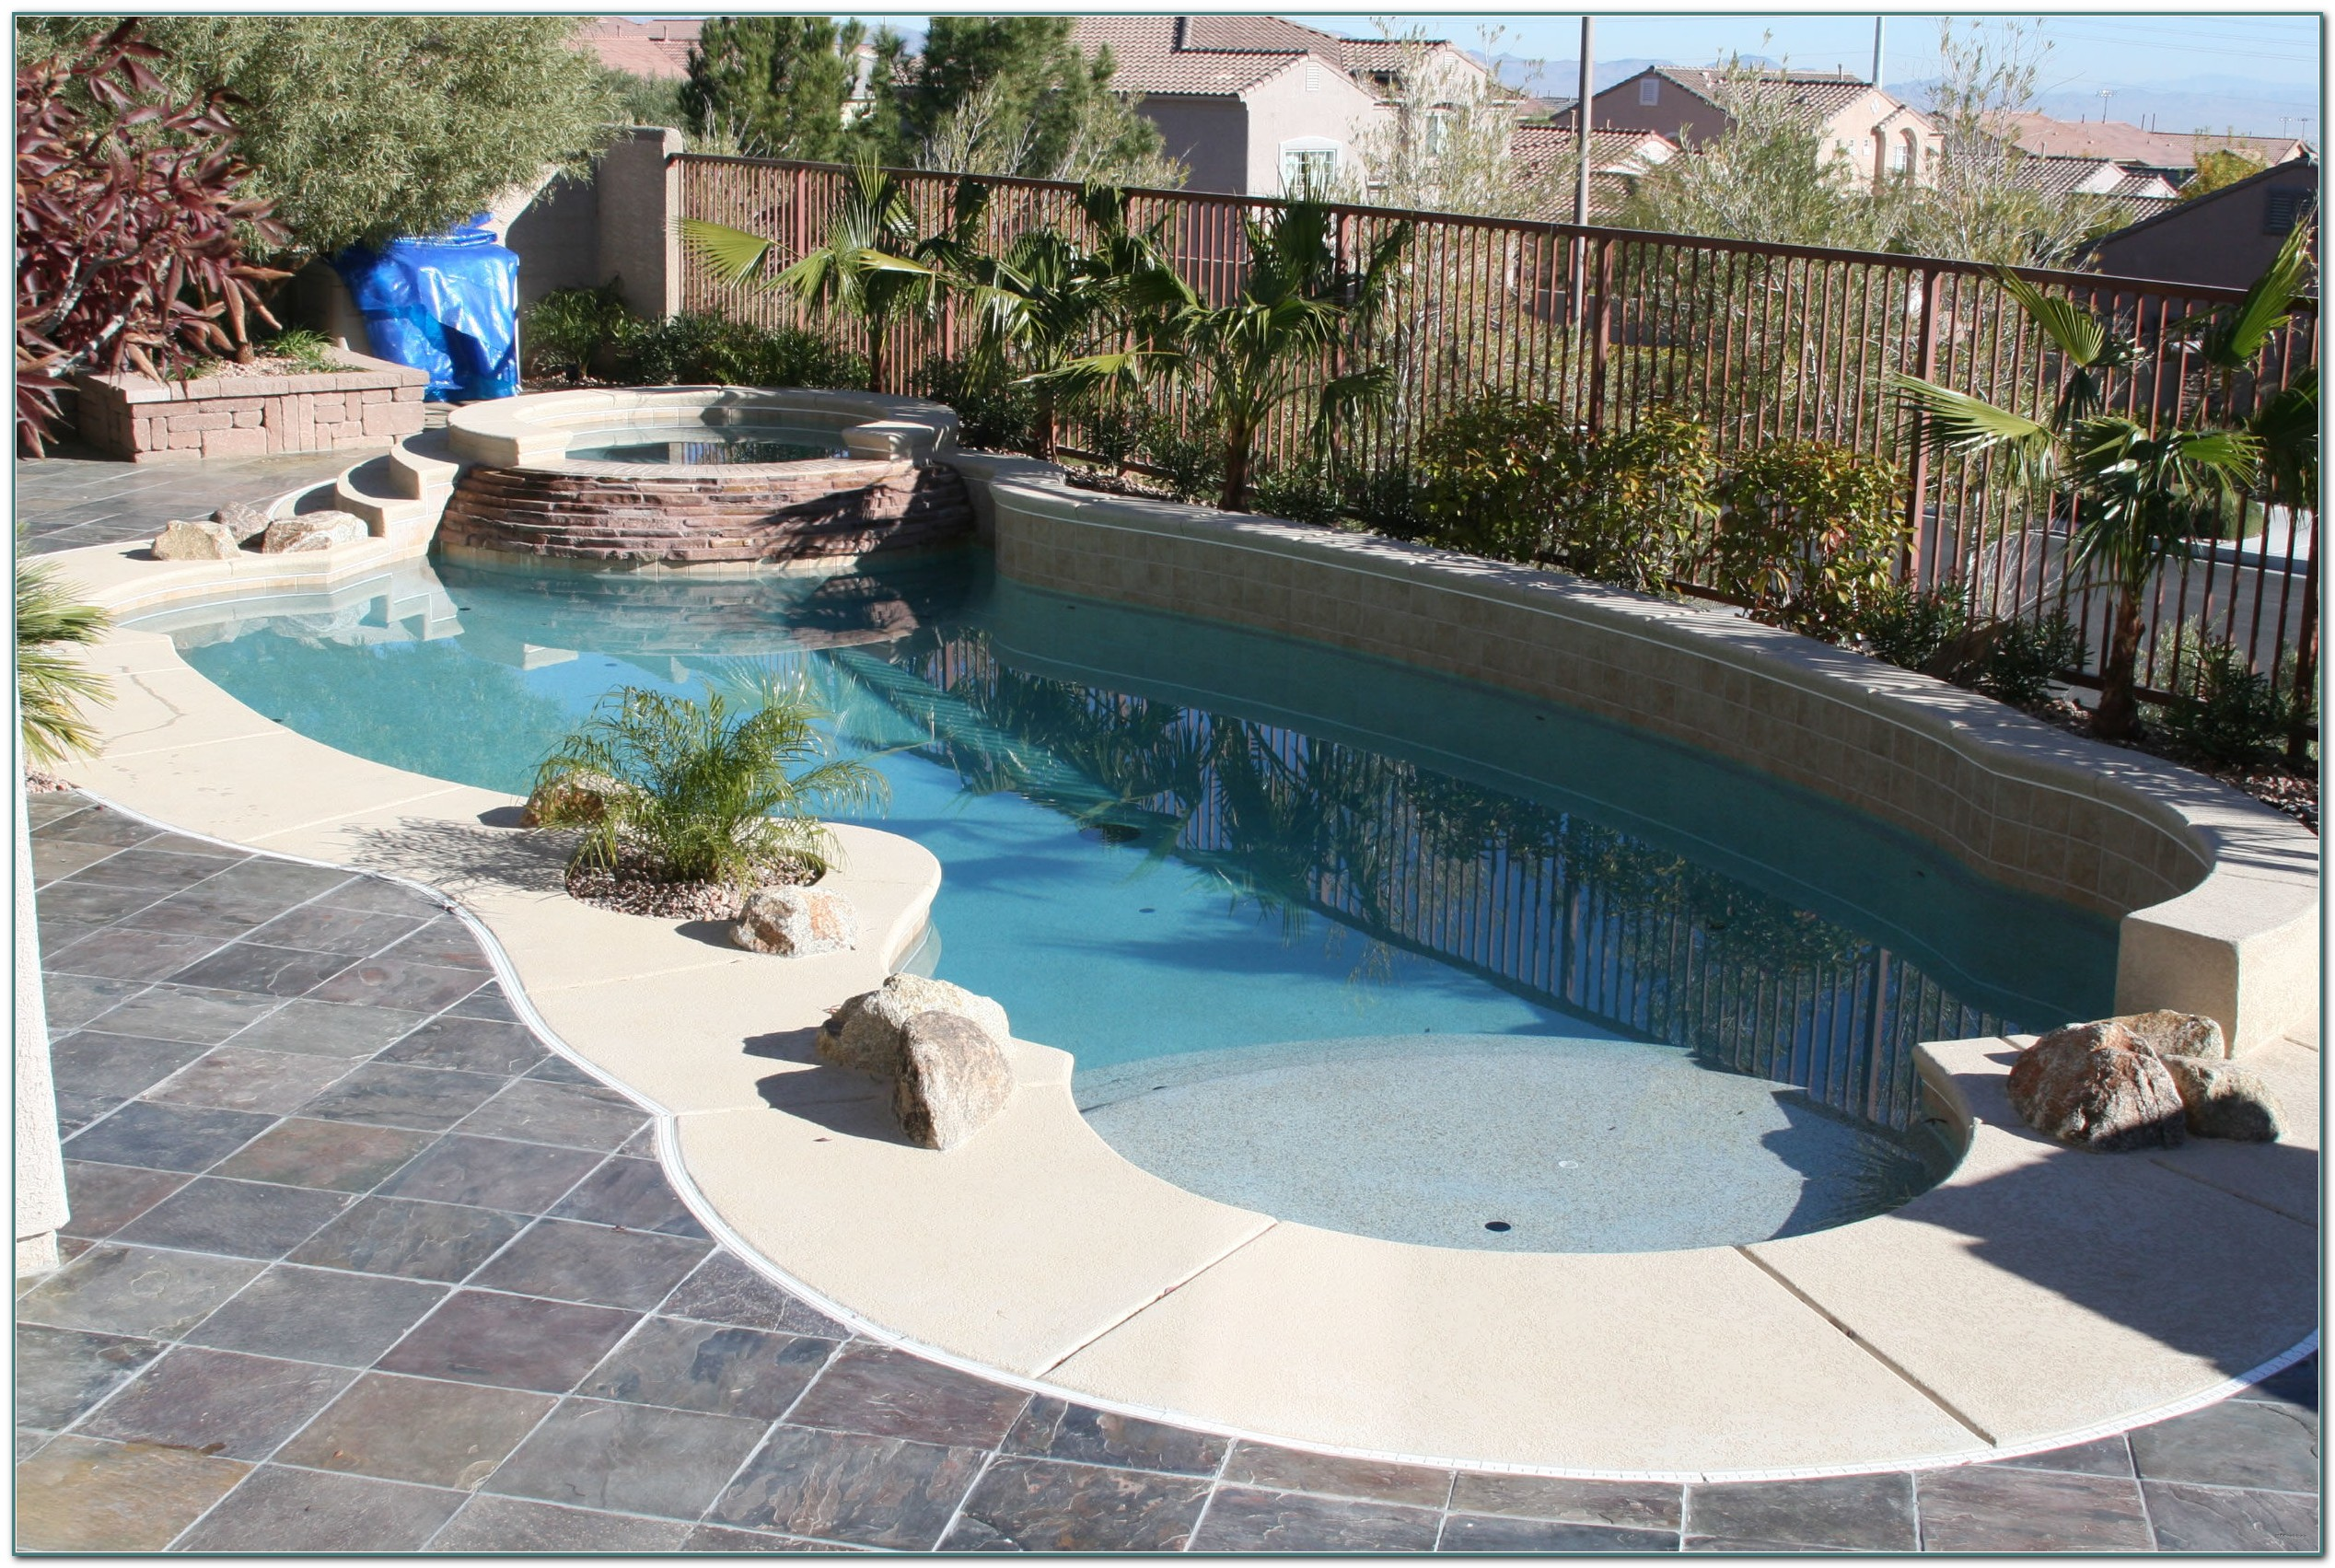 Pool Plans For Small Yards